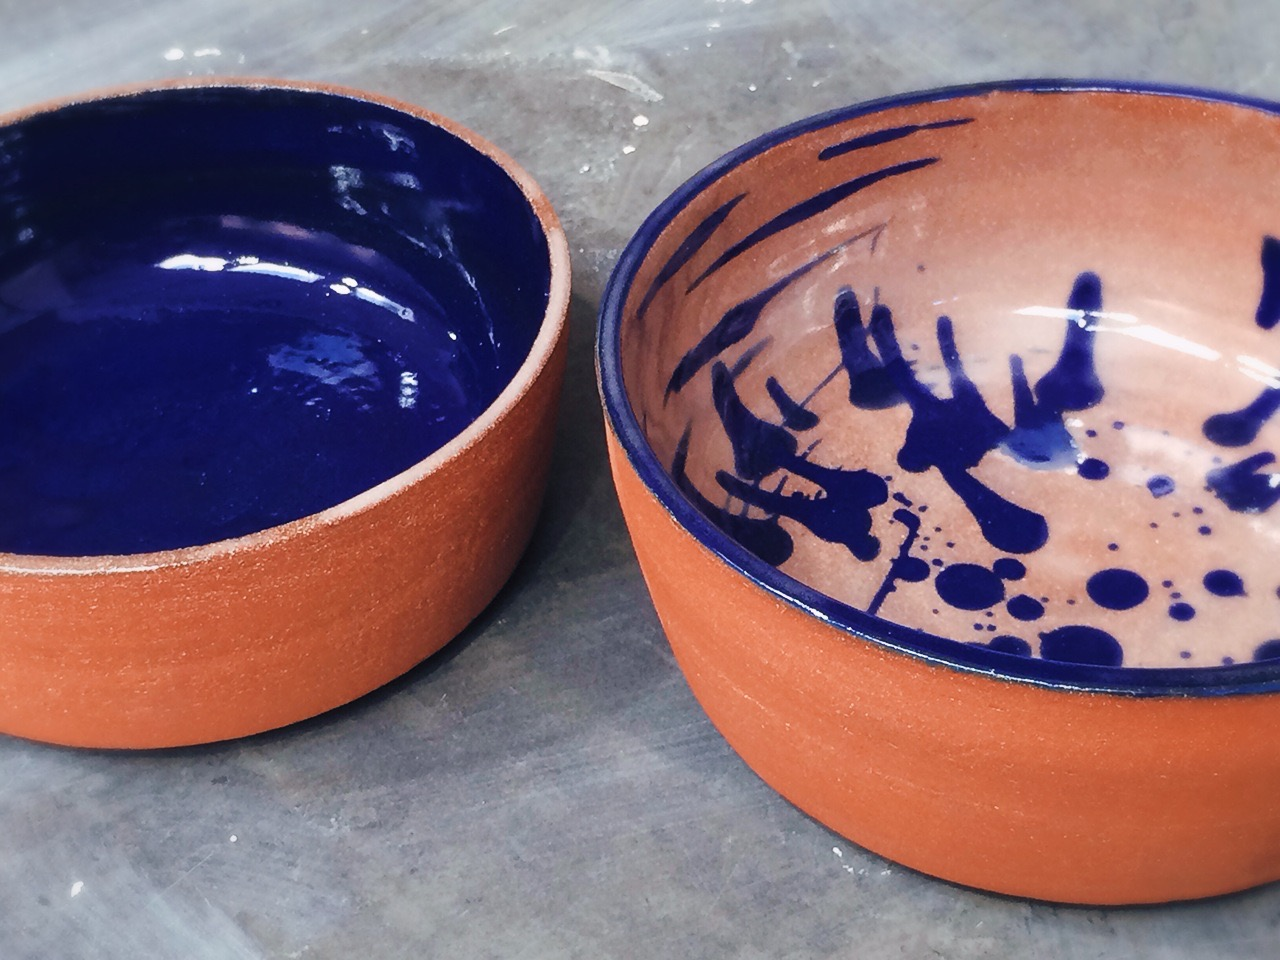 Sides left unglazed to expose the natural terracotta color and its naturally warm tactile feel. -